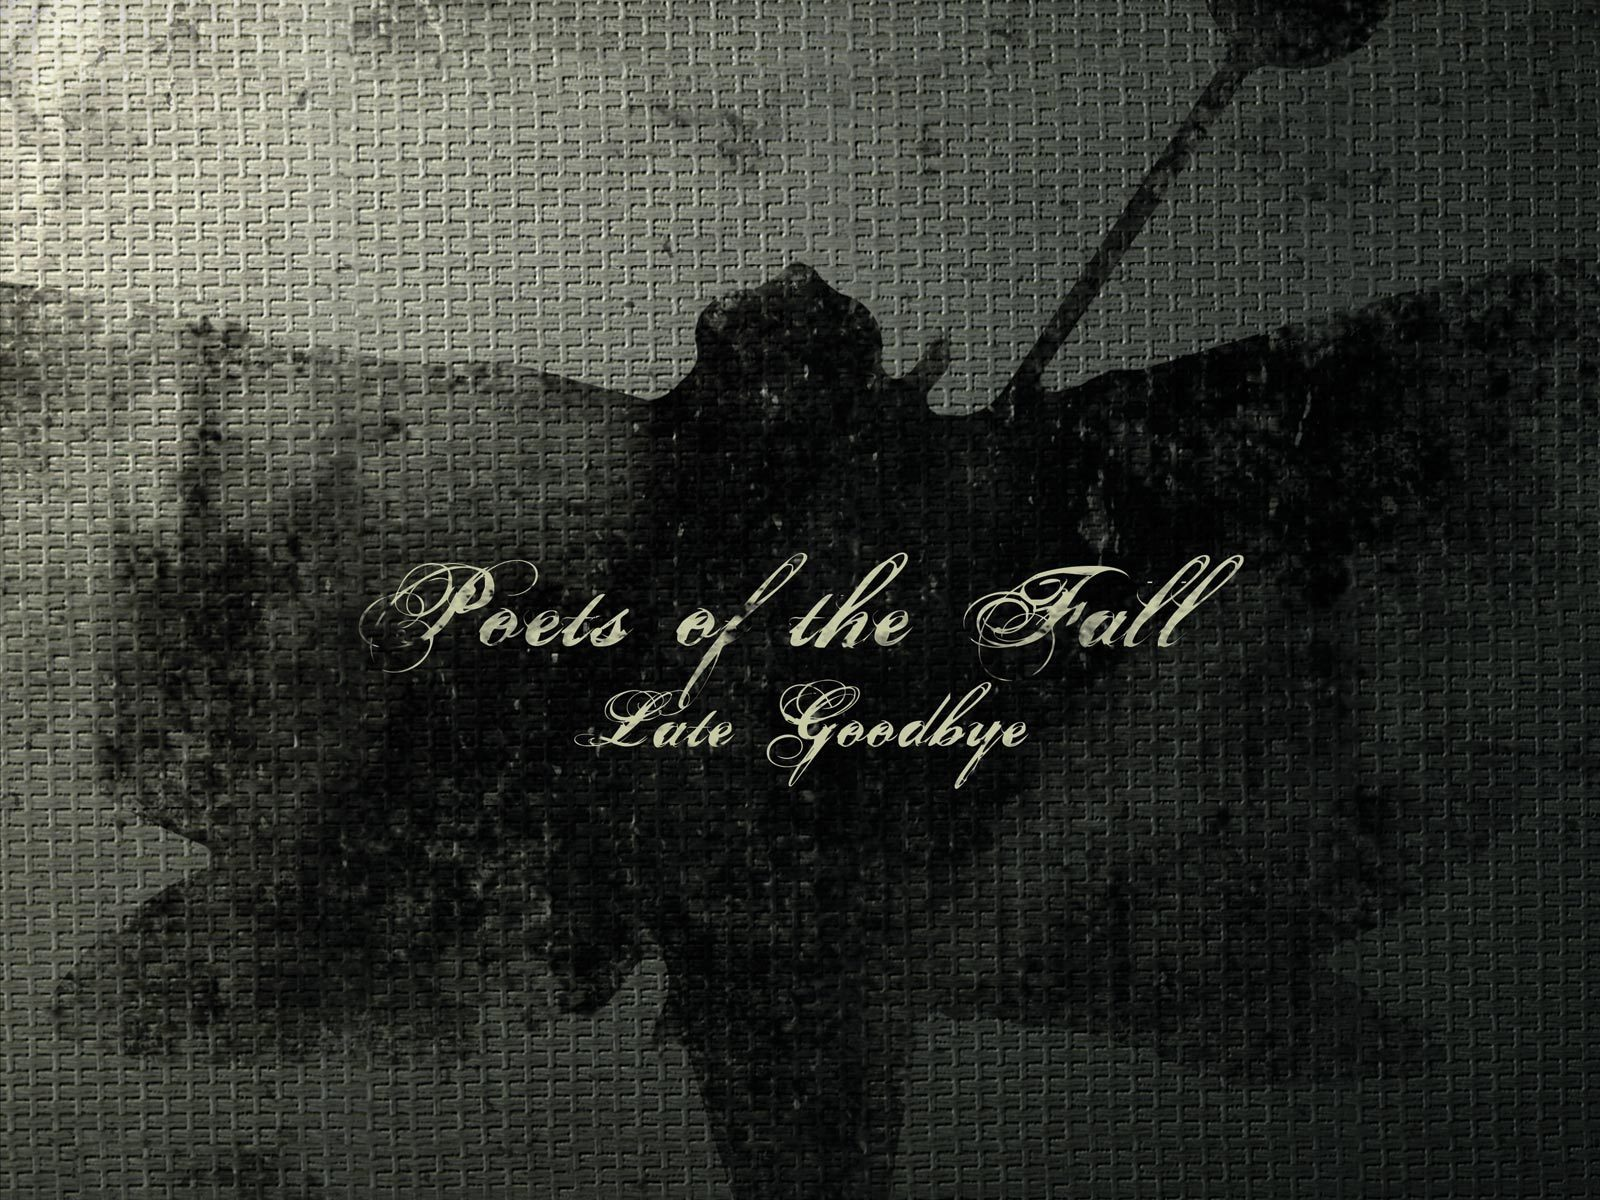 Poets Of The Fall Wallpaper Poets Of The Fall Images Poets Of The Fall Hd Wallpaper